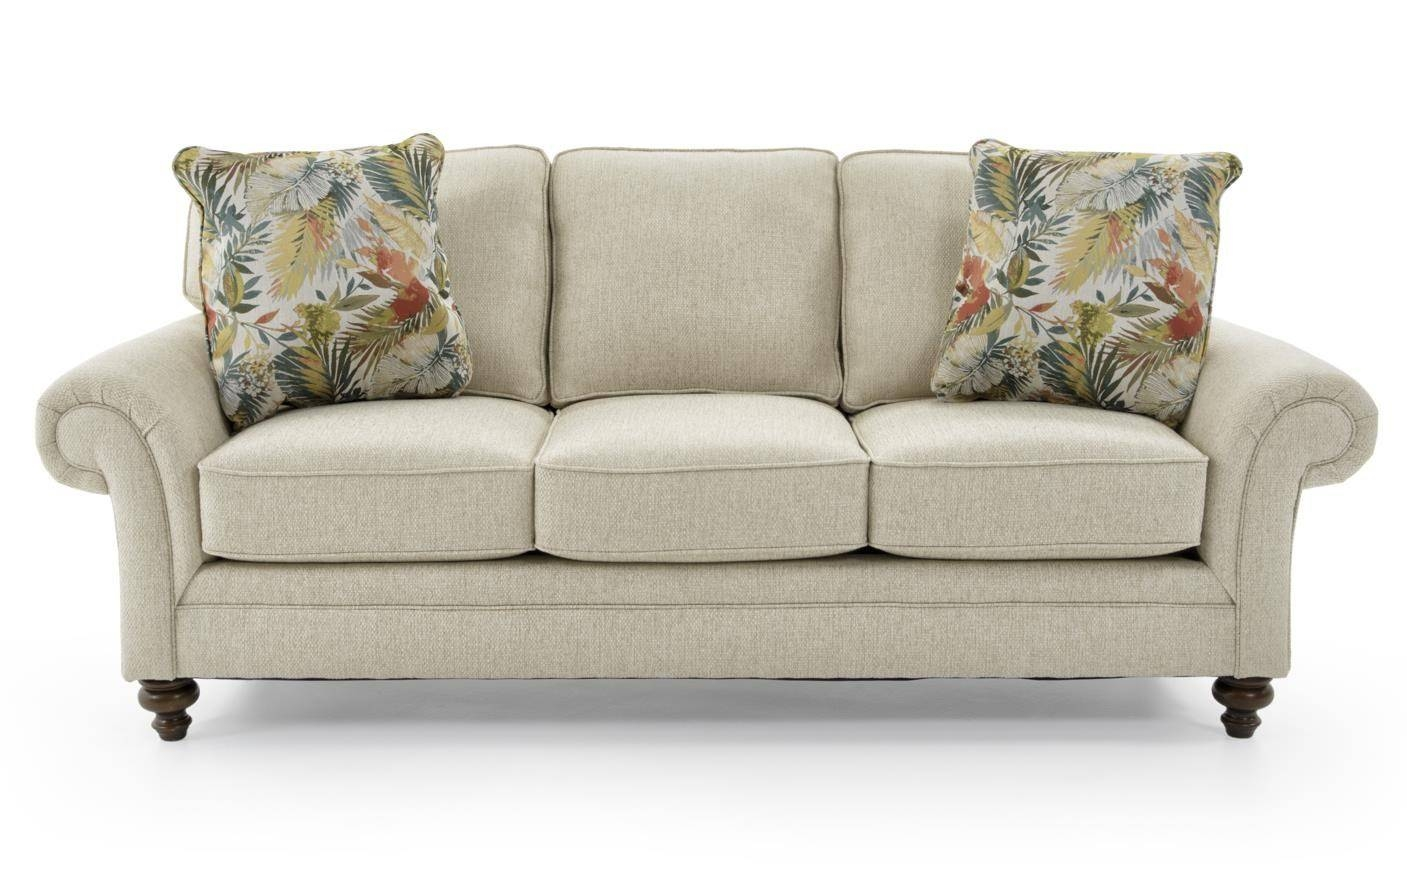 Broyhill Furniture Larissa Upholstered Stationary Sofa With Rolled within Broyhill Sofas (Image 7 of 15)